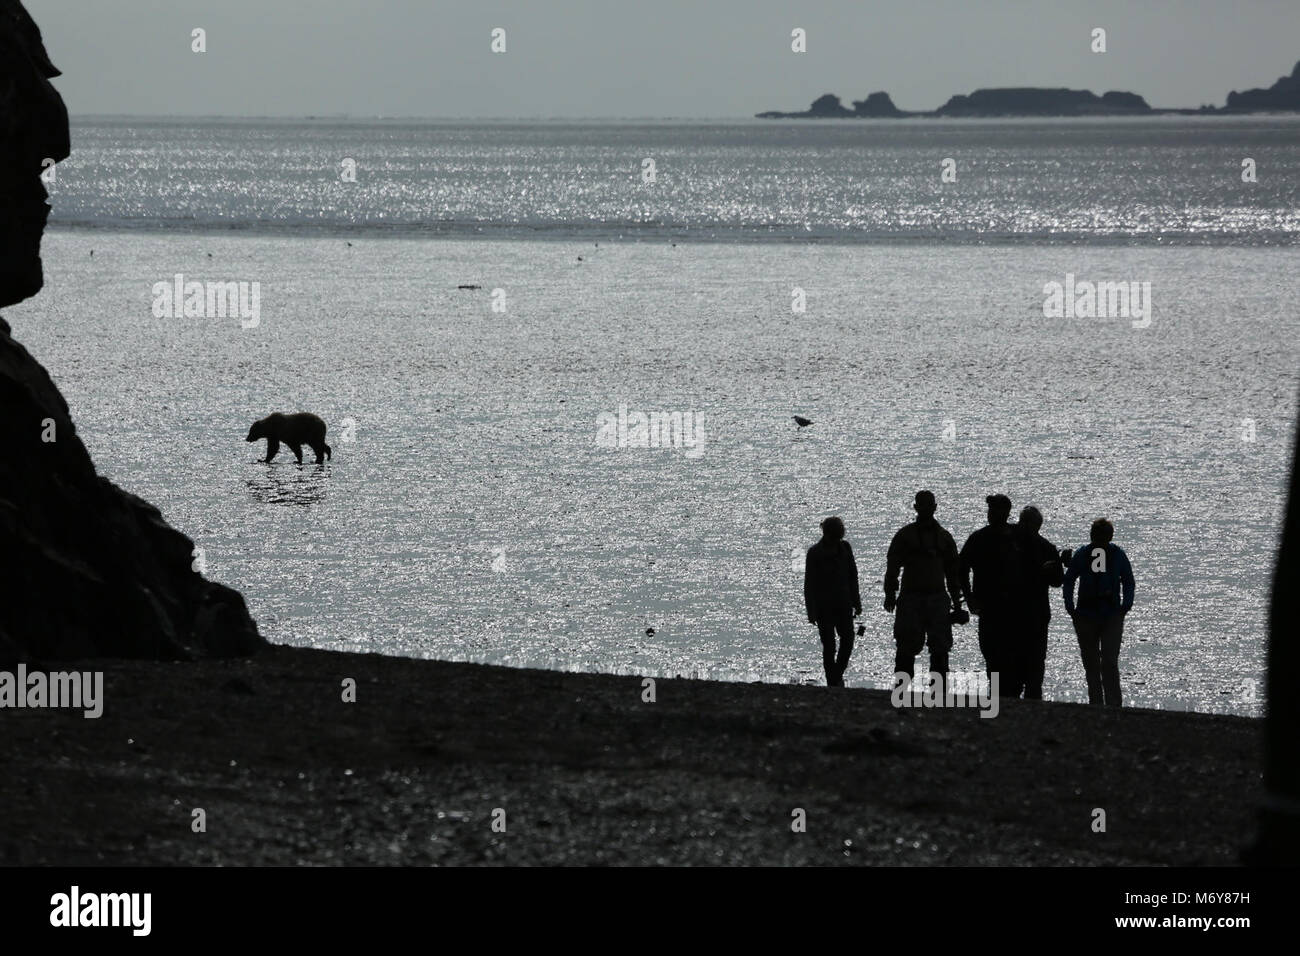 Chinitna Bay Tidal Flats   . During low tide bears dig for clams in Chinitna Bay. These visitors are on the beach - Stock Image